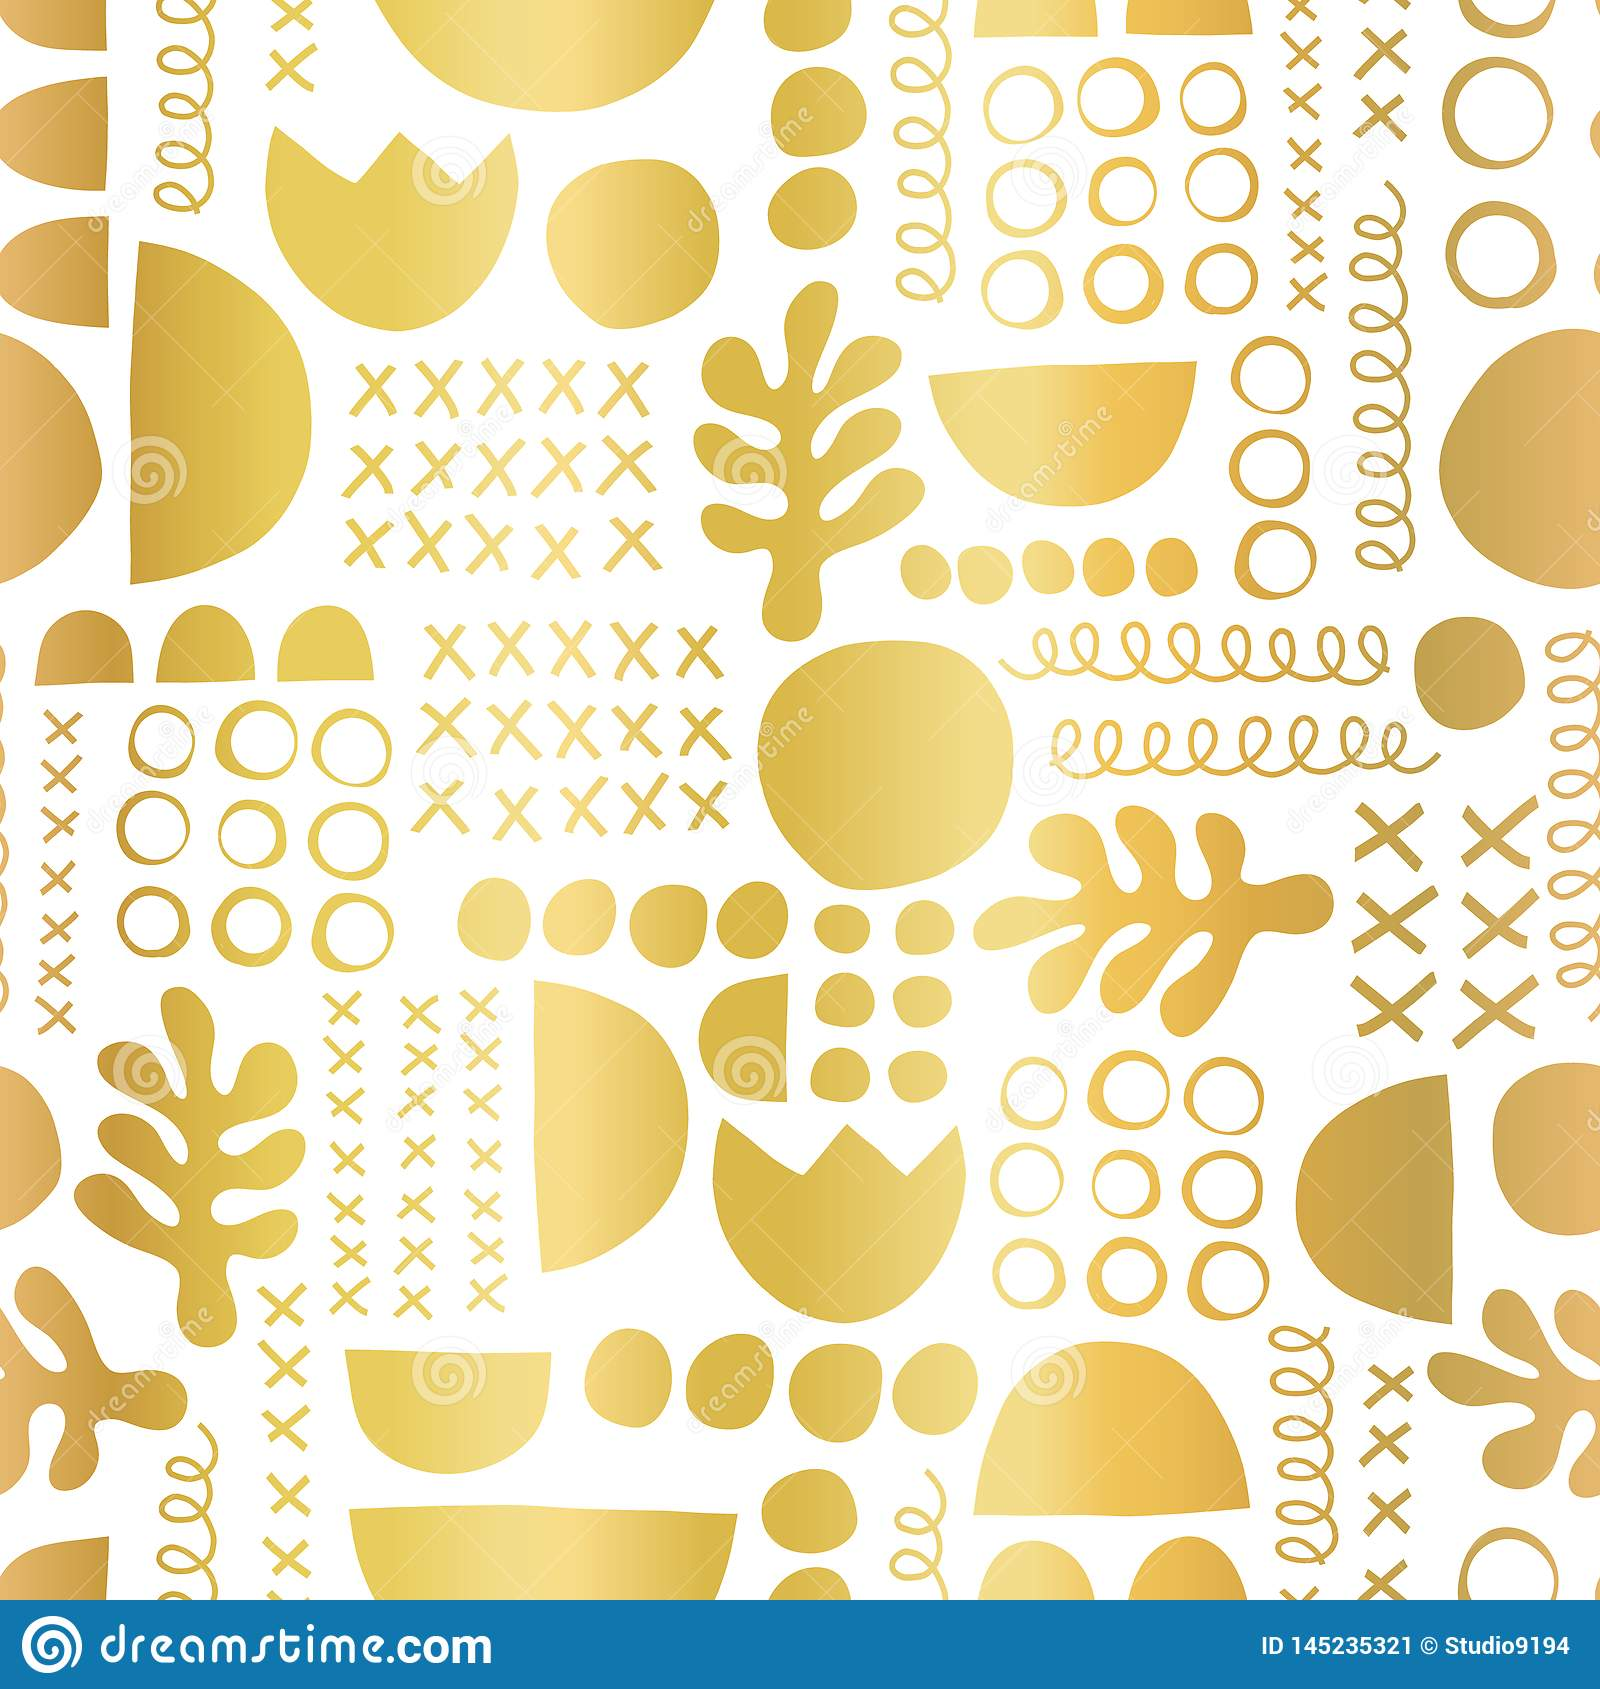 Gold foil geometric shapes on black seamless vector background. Metallic golden leaf plant and abstract shapes pattern